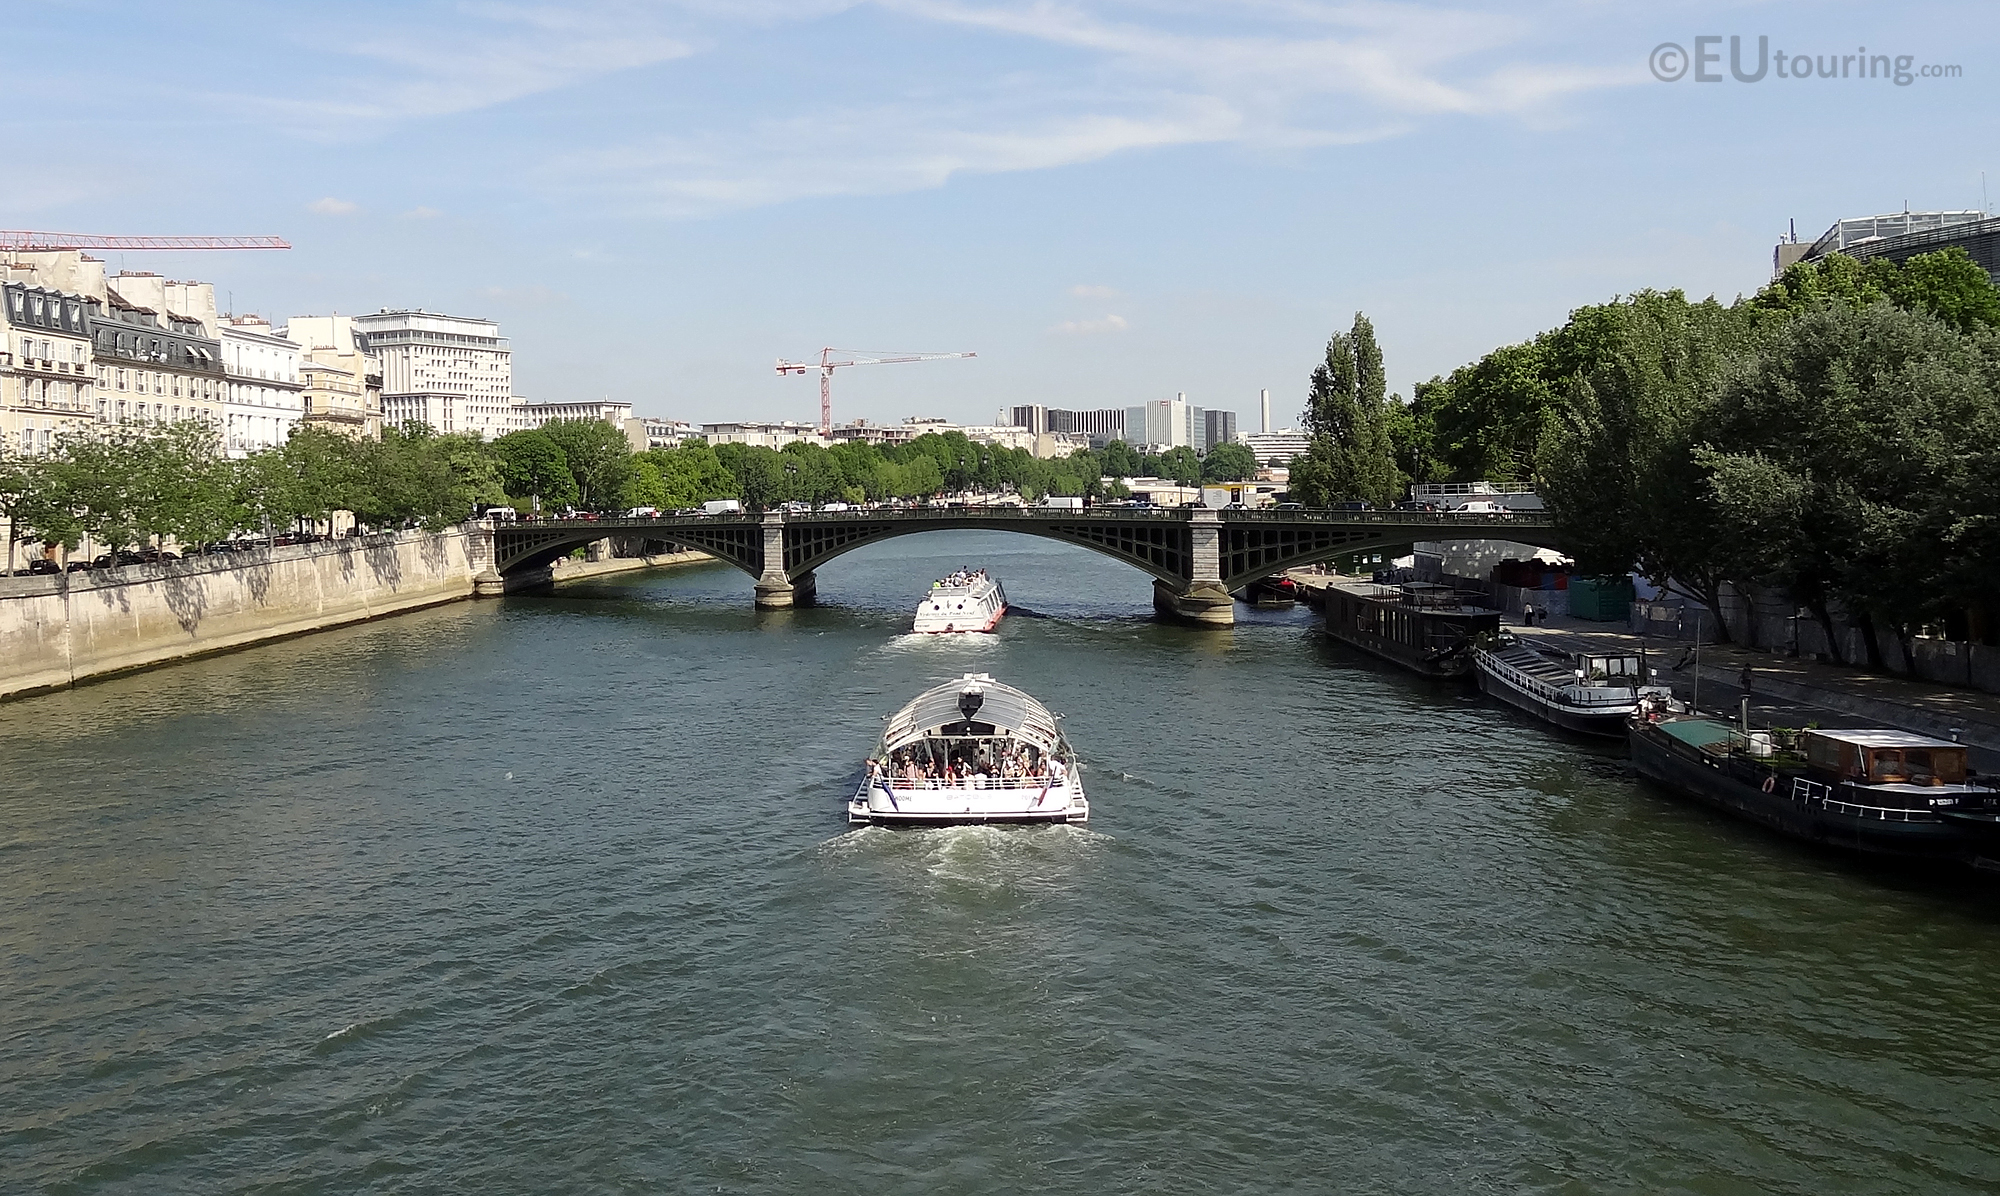 Tour boats going beneath the Pont de Sully